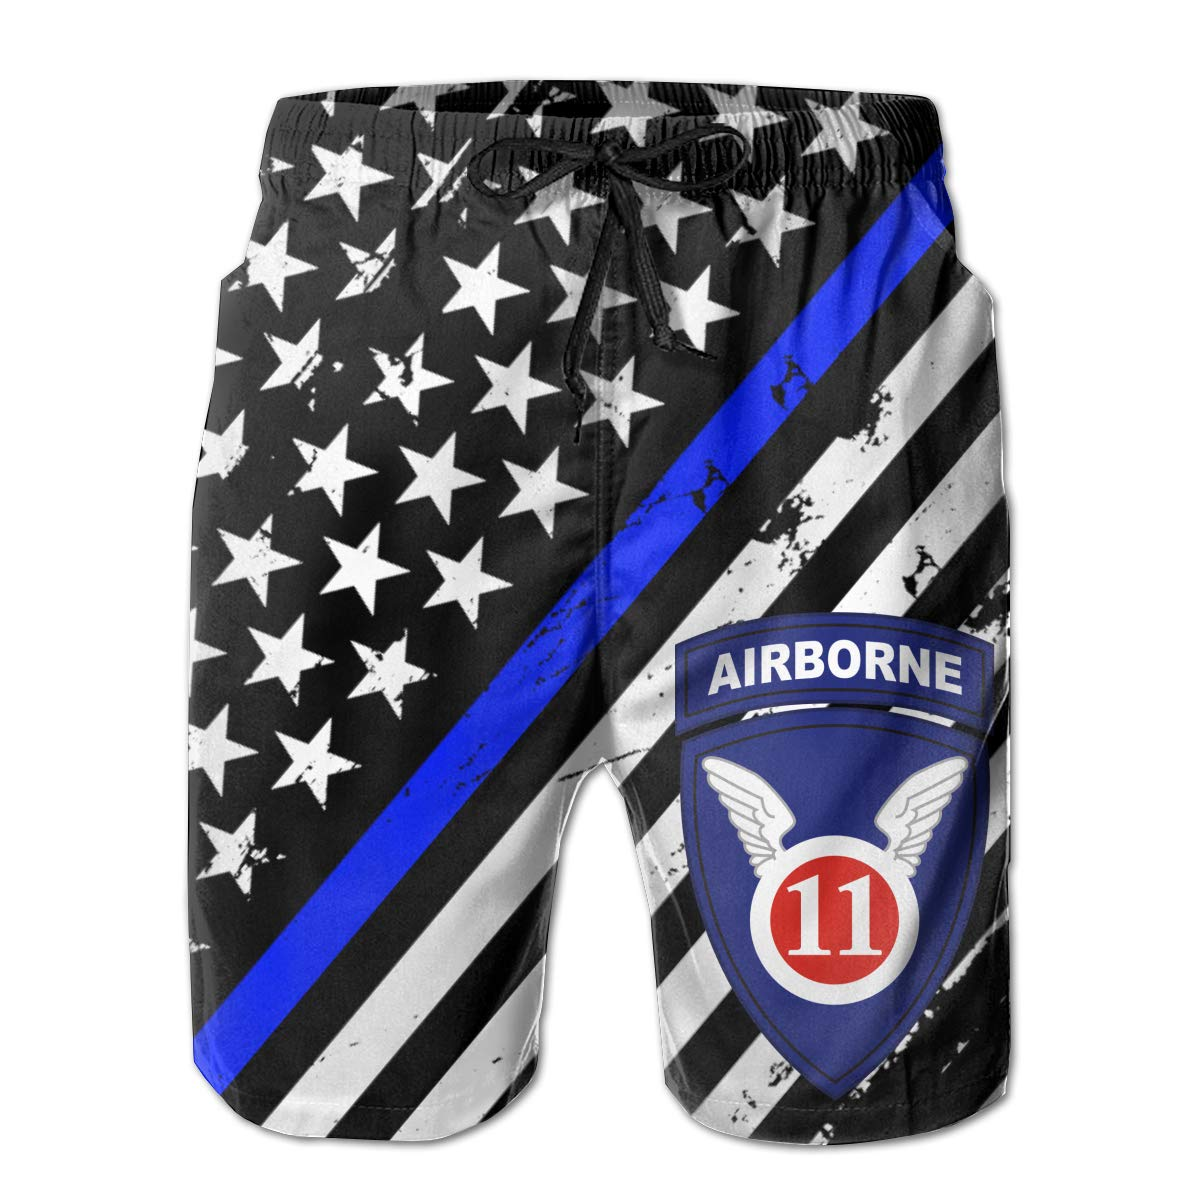 United States Army Airborne School The 11th Airborne Summer Swim Trunks 3D Print Beach Board Shorts for Men